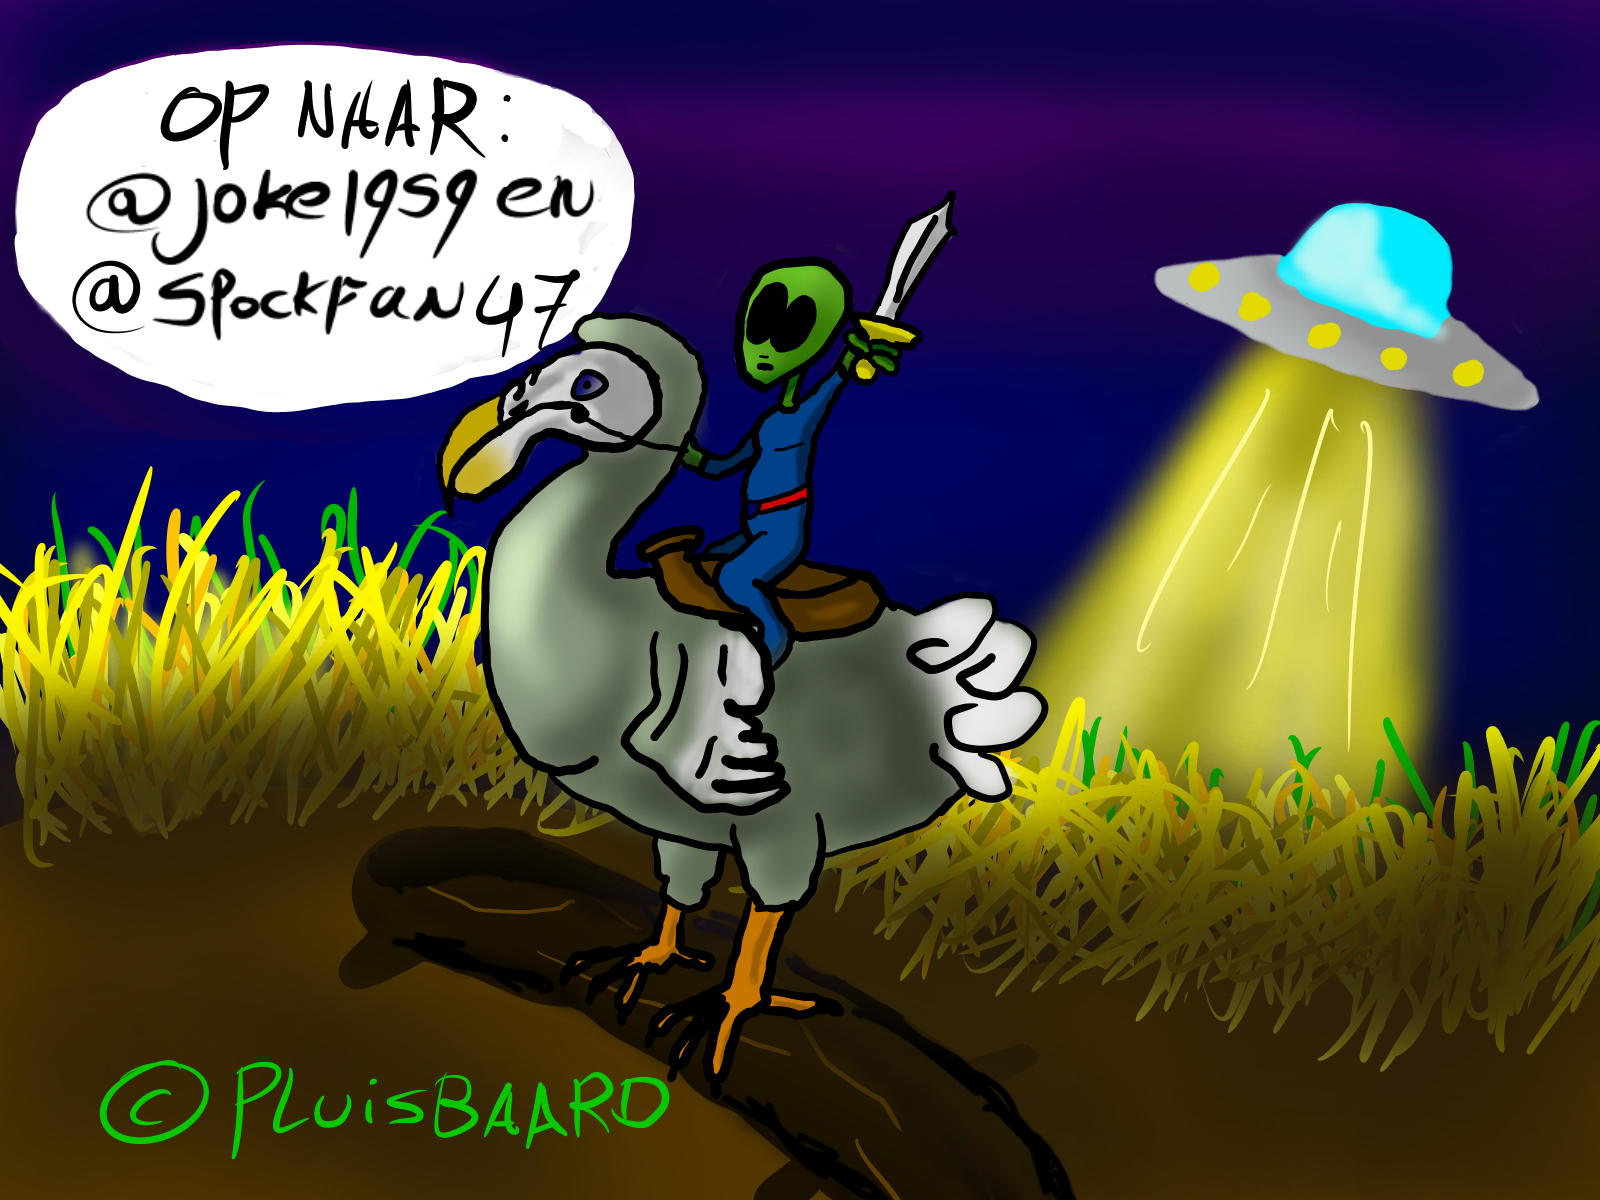 Saddle your dodo! We're going to conquer those earthlings!